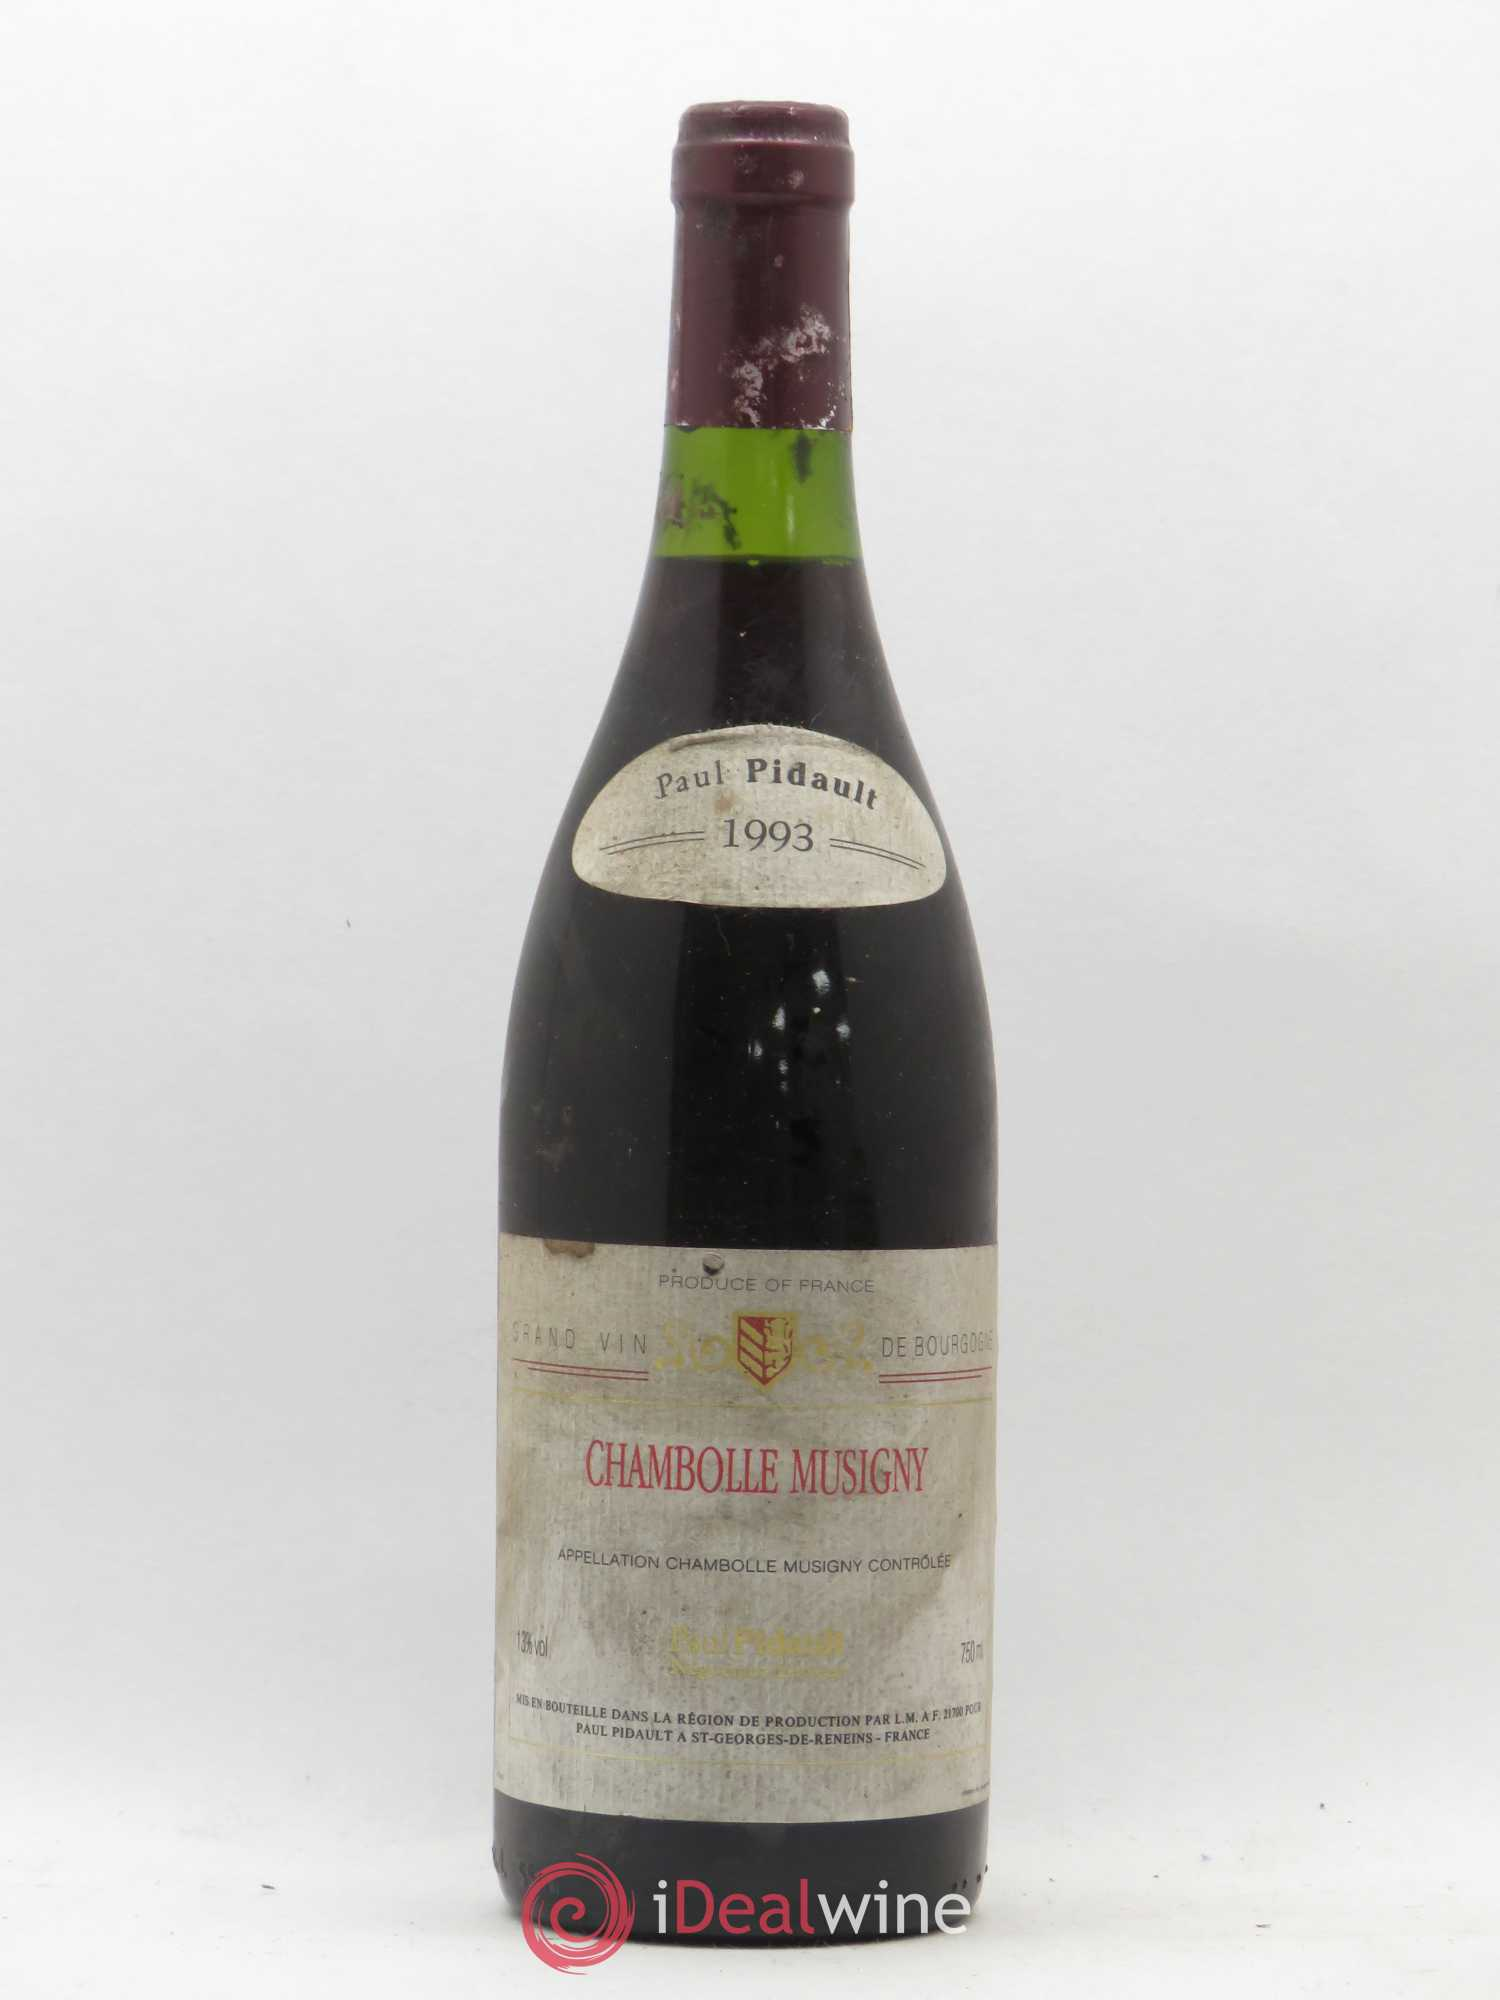 Chambolle-Musigny P. Pidault 1993 - Lot de 1 Bouteille